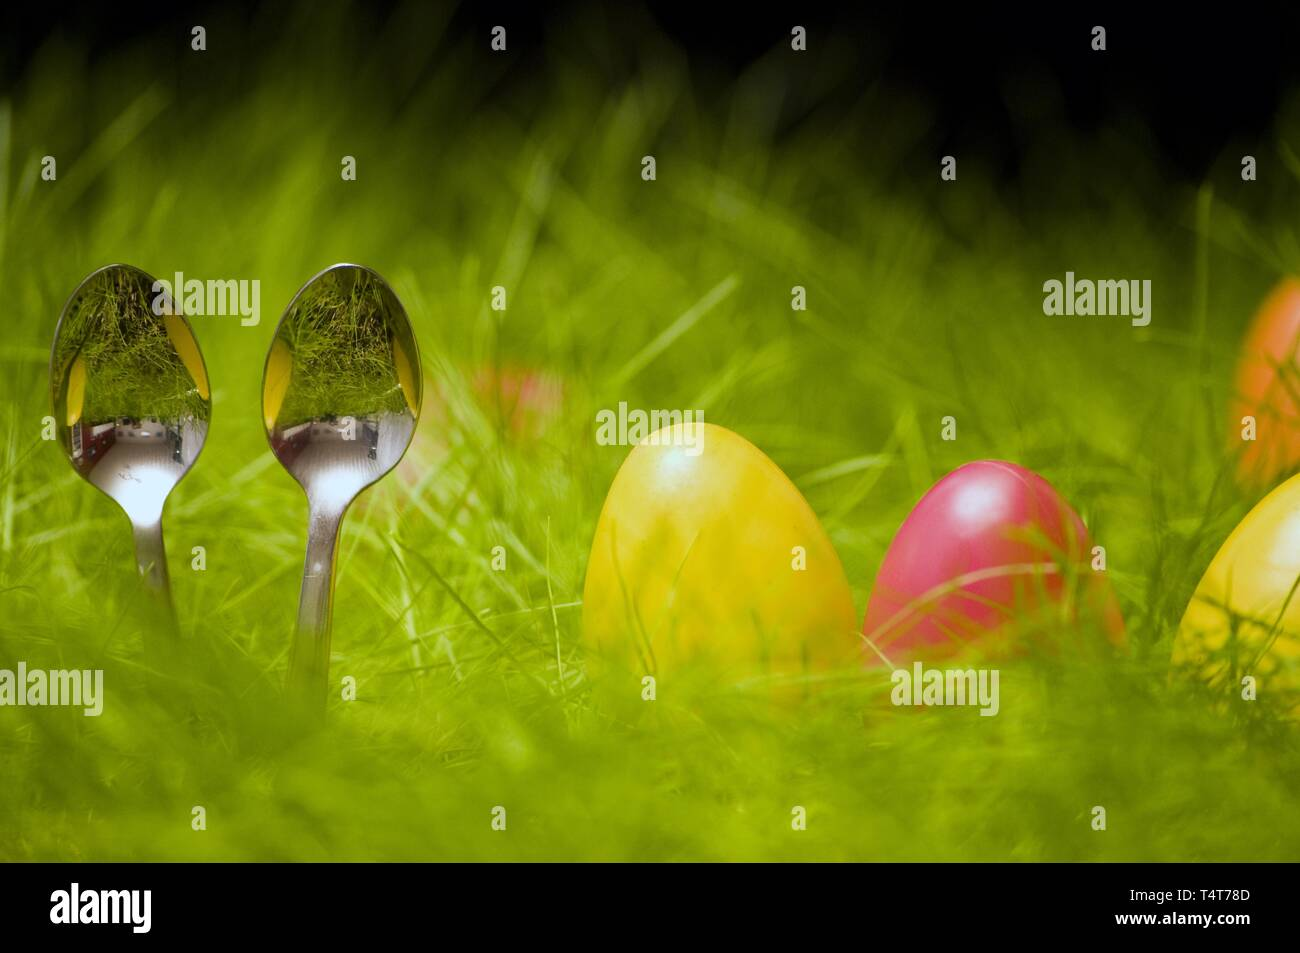 Easter eggs in grass, coffee spoon, symbol photo Osterhase - Stock Image